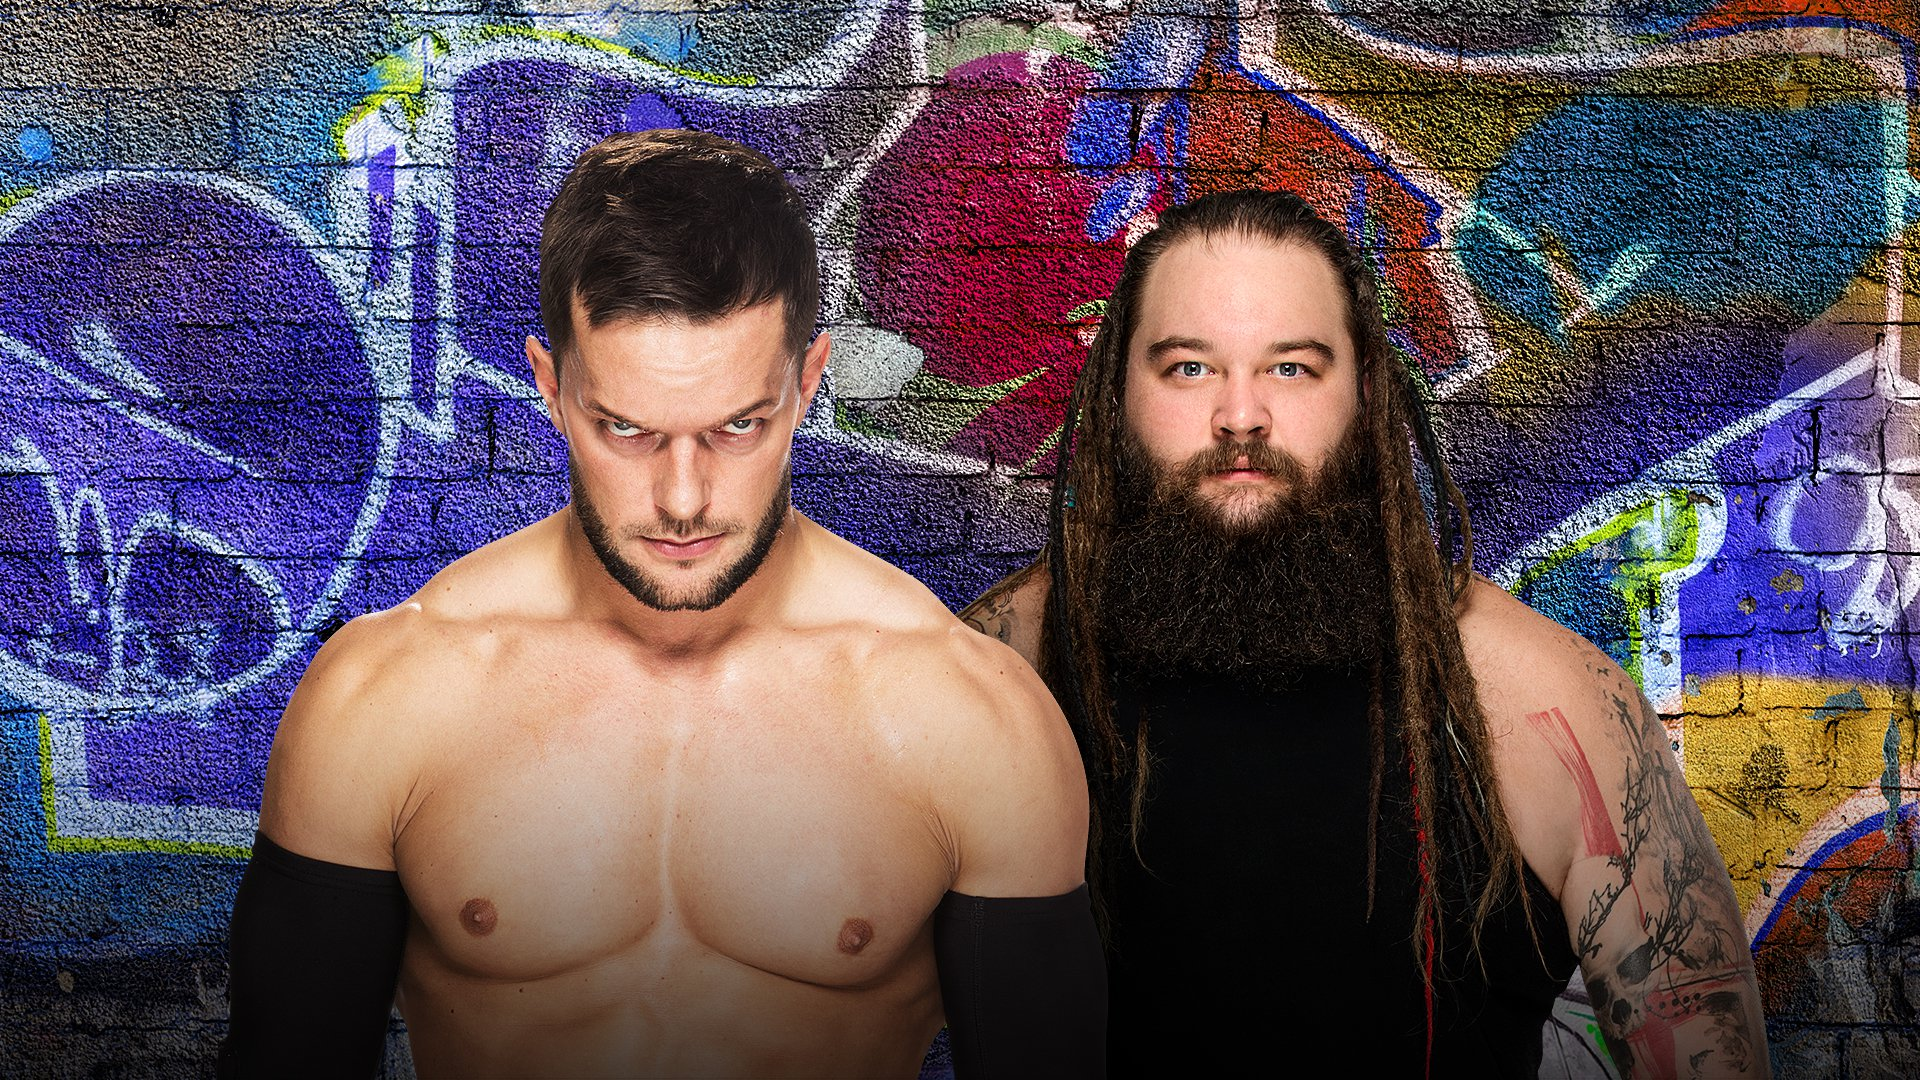 WWE SummerSlam 2017: Finn Bálor vs. Bray Wyatt